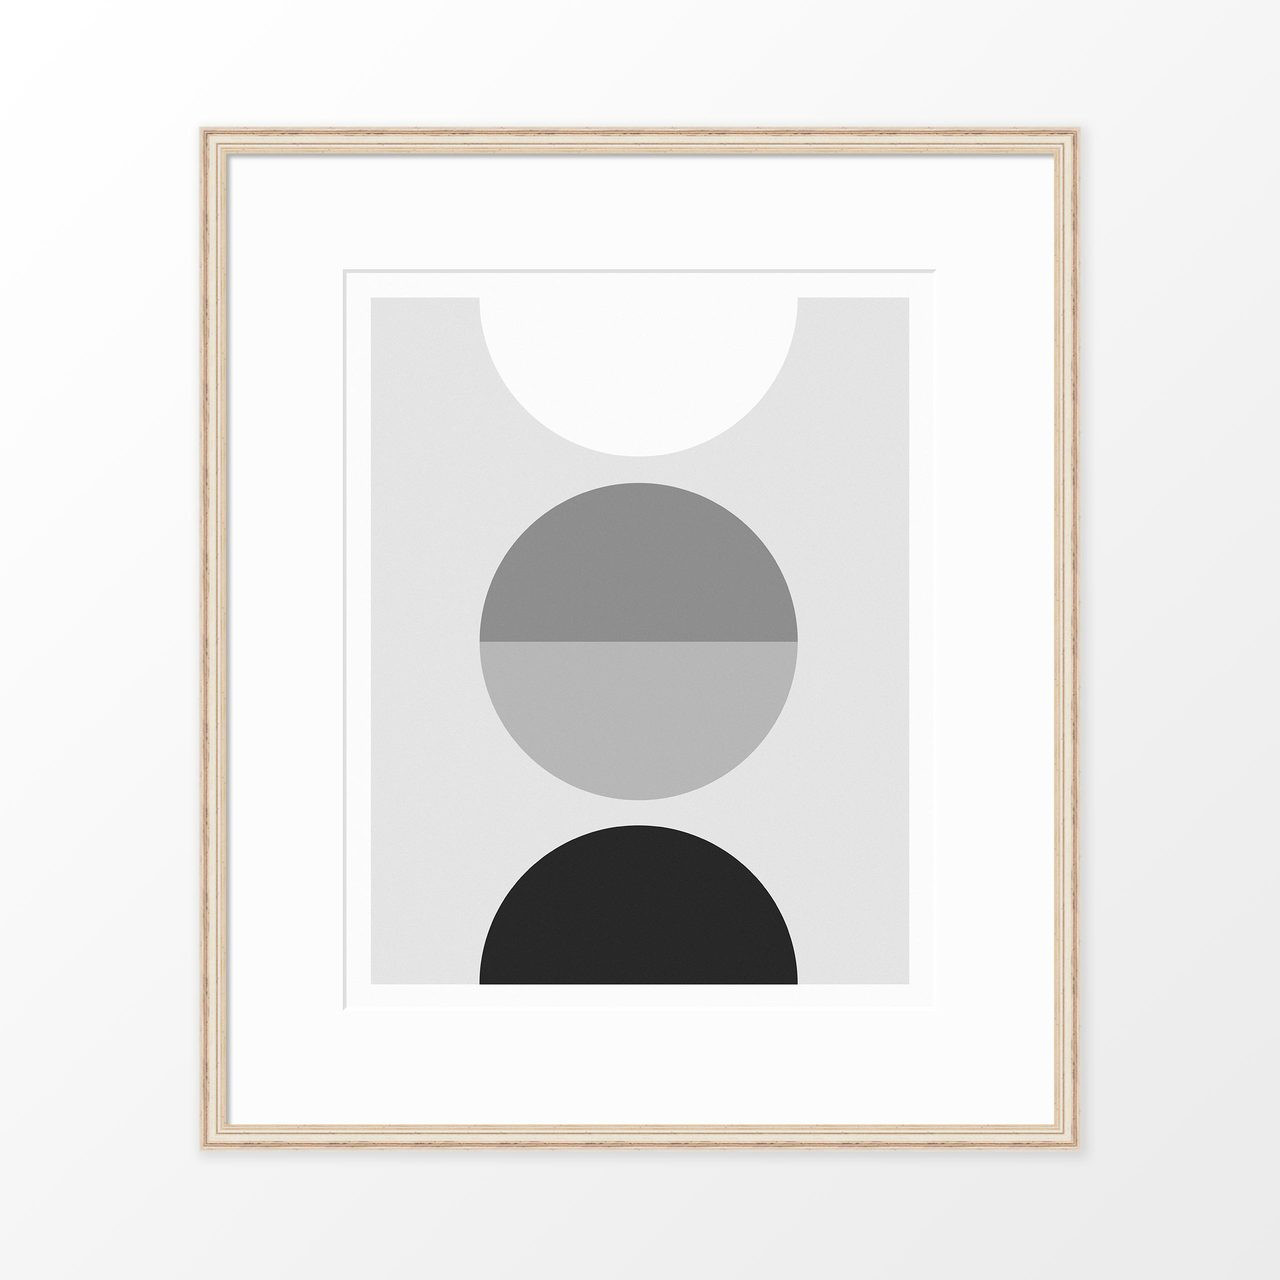 'Luna' Black and White Geometric Digital Art Print from The Printed Home